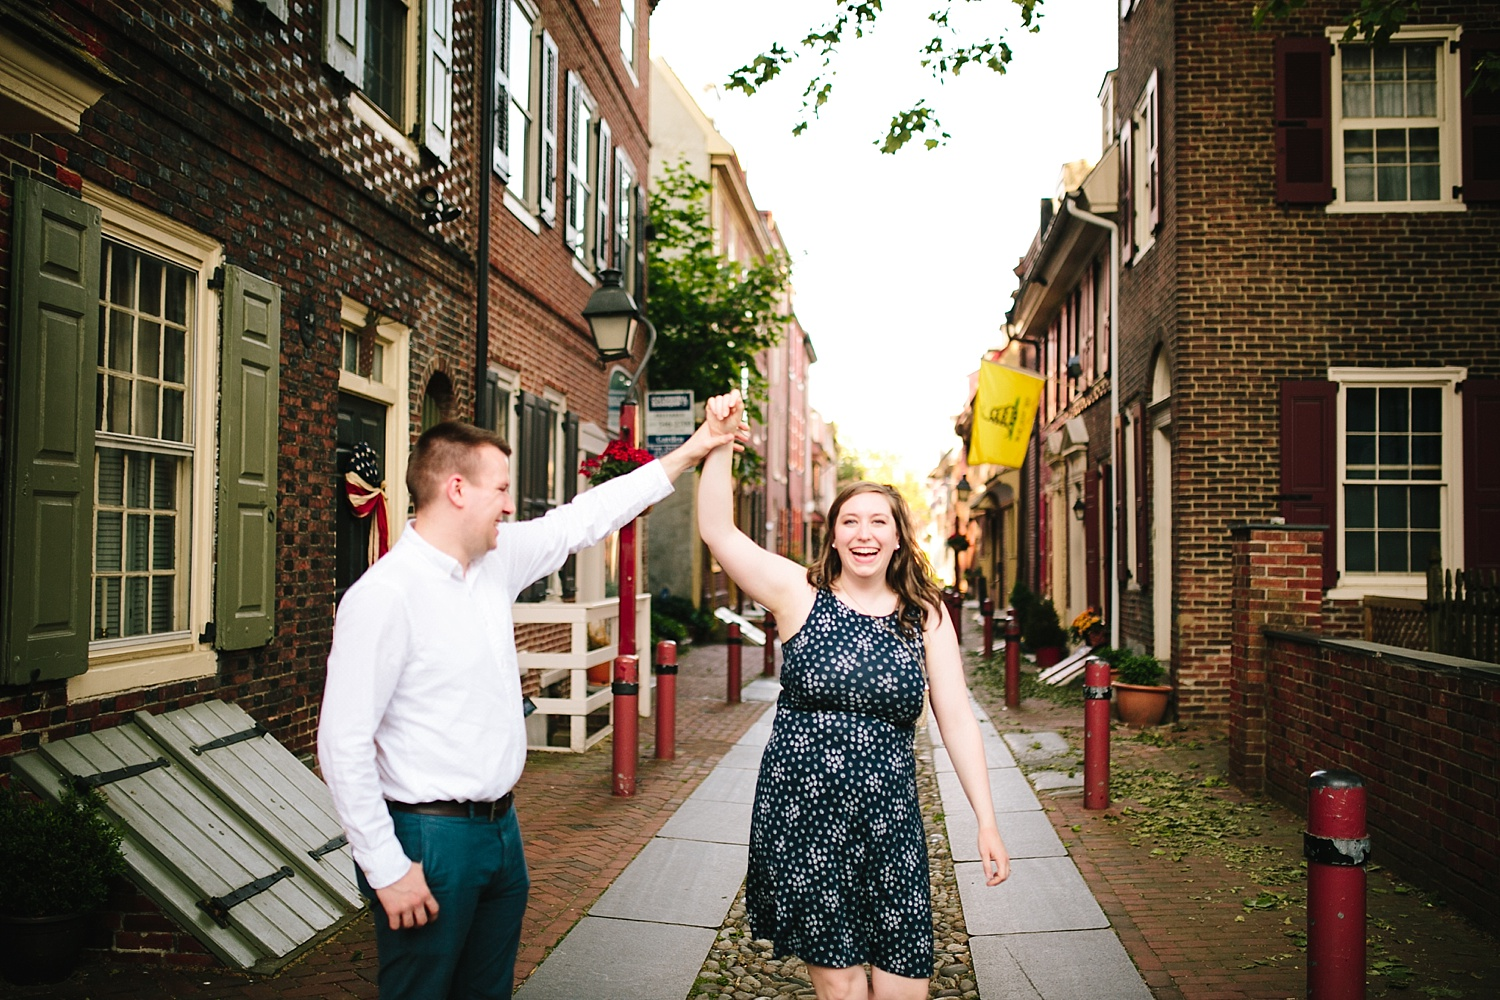 lizandbrandon_oldcity_philadelphia_elfrethsalley_engagement_session_image011.jpg